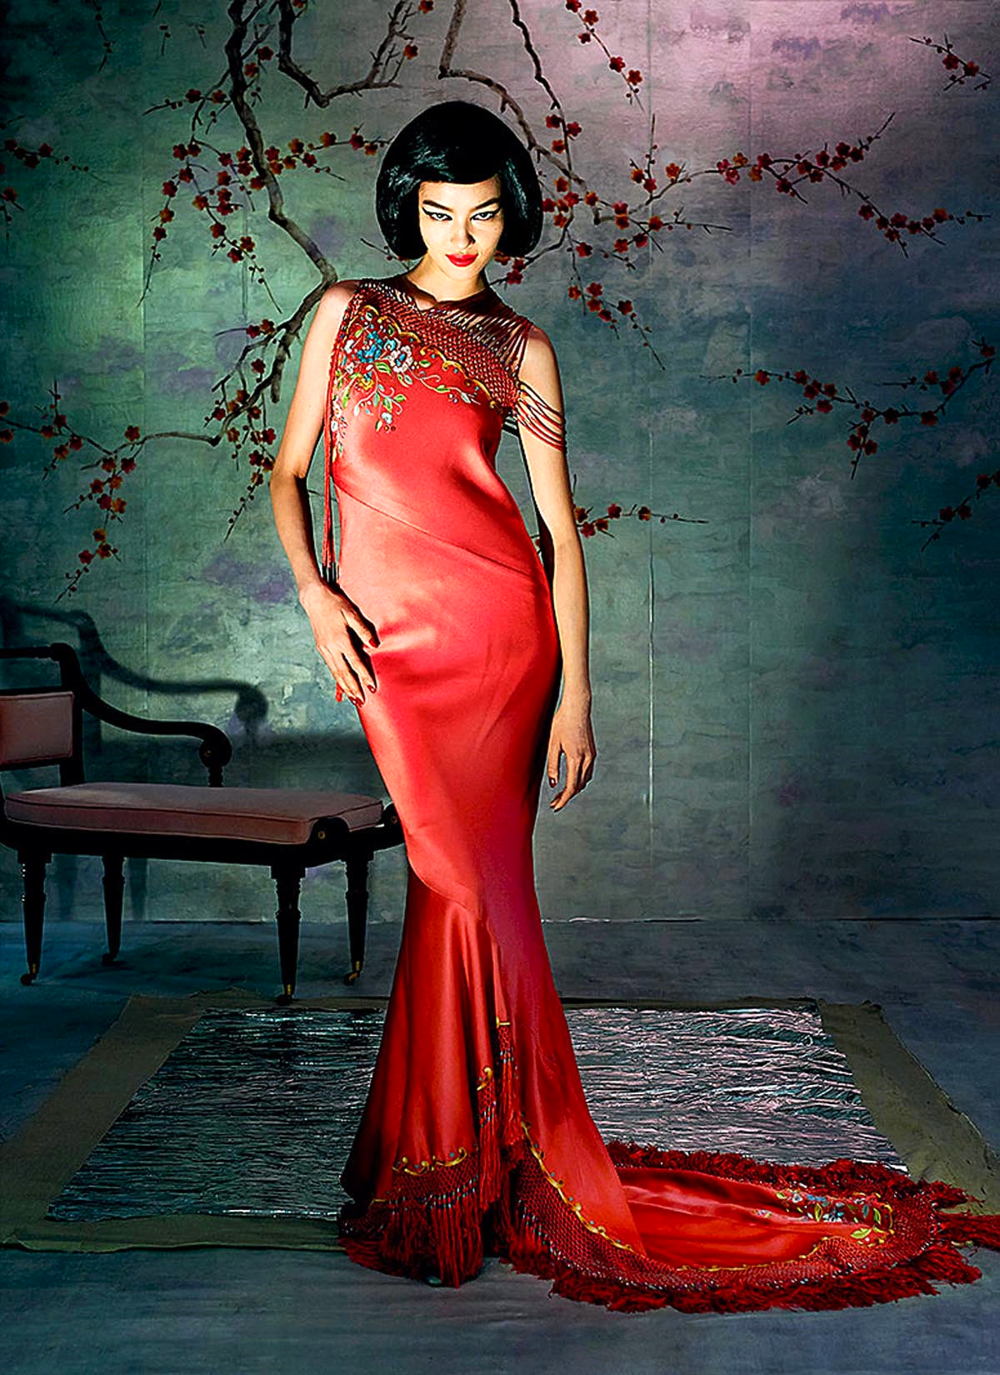 Scarlet has so many associations: firecrackers in their bright wrappers; the lucky red-paper trinkets of the Chinese New Year. John Galliano summoned to mind these references for Christian Dior Haute Couture in Spring 1997 with this silk fringed dress with a delicate tracing of flowers from the shoulder.